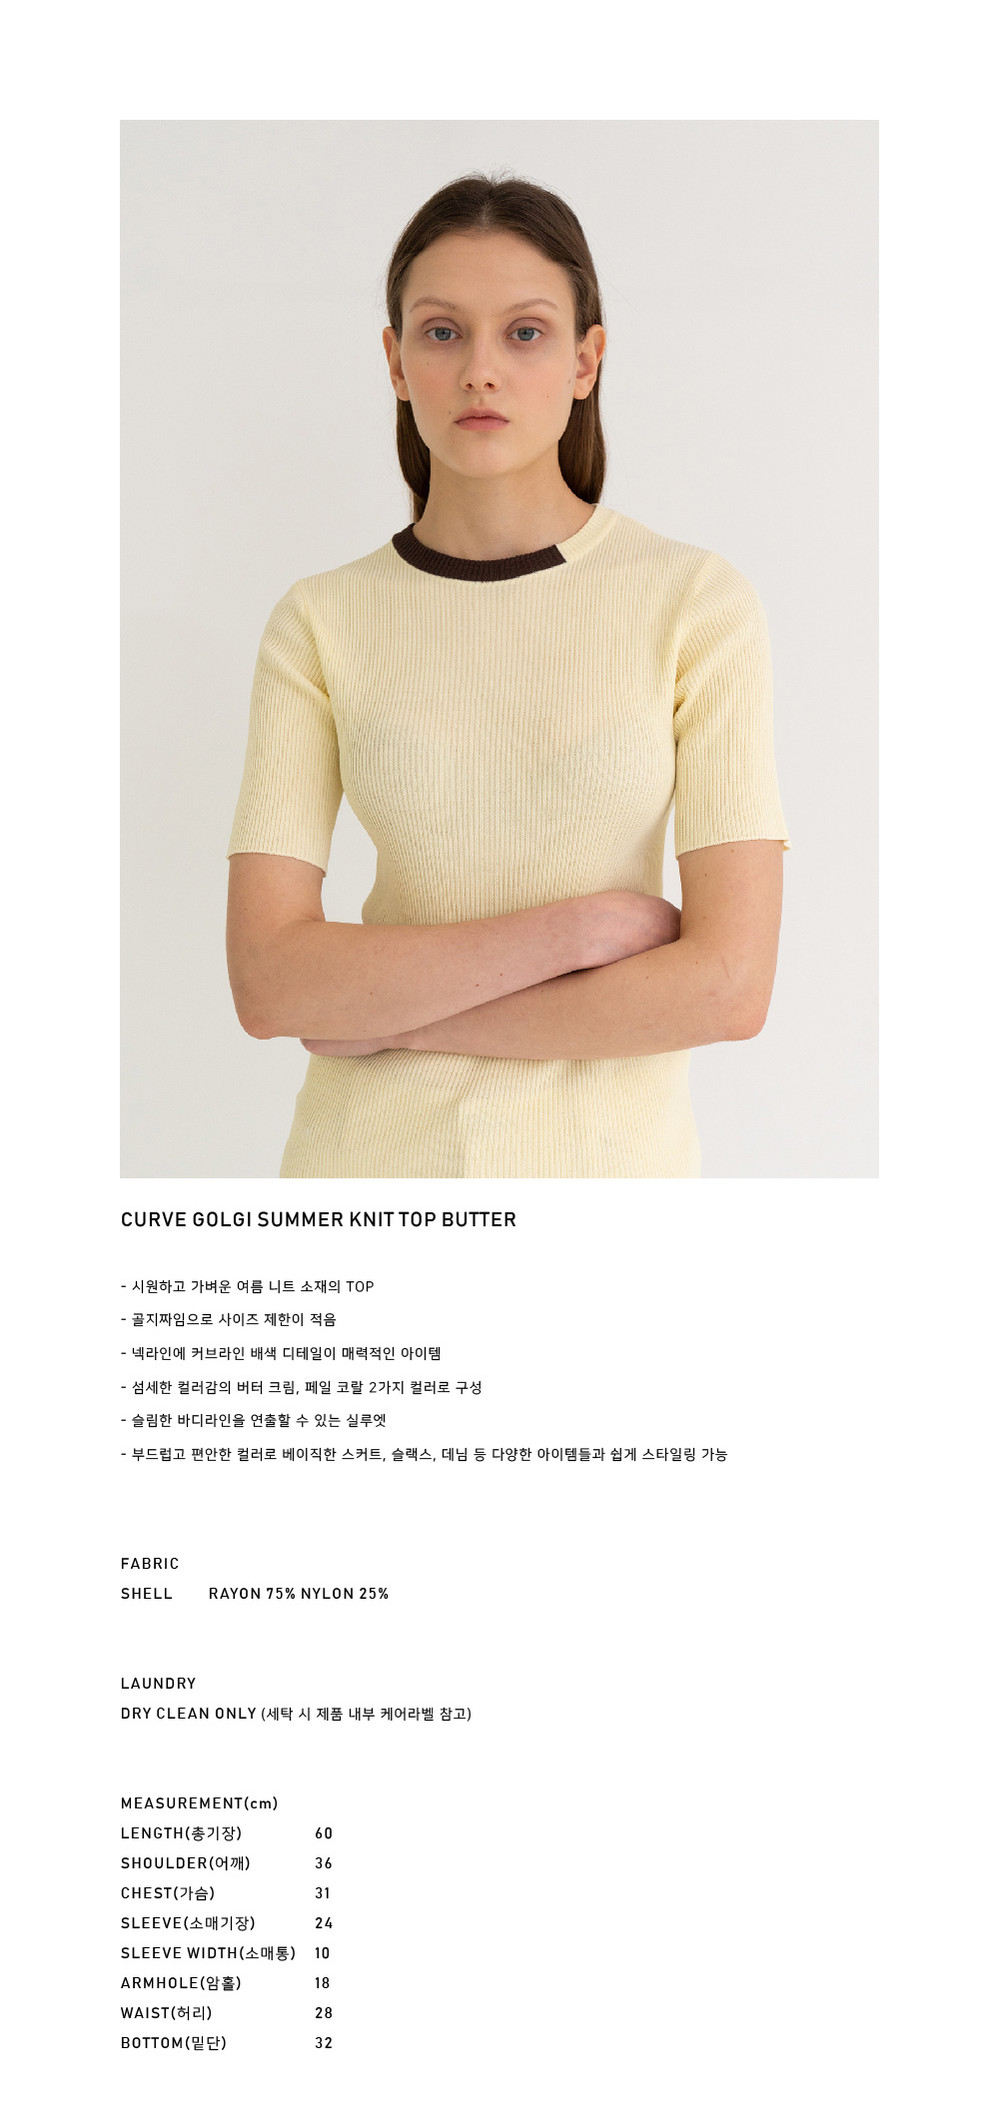 CURVE GOLGI SUMMER KNIT TOP BUTTER